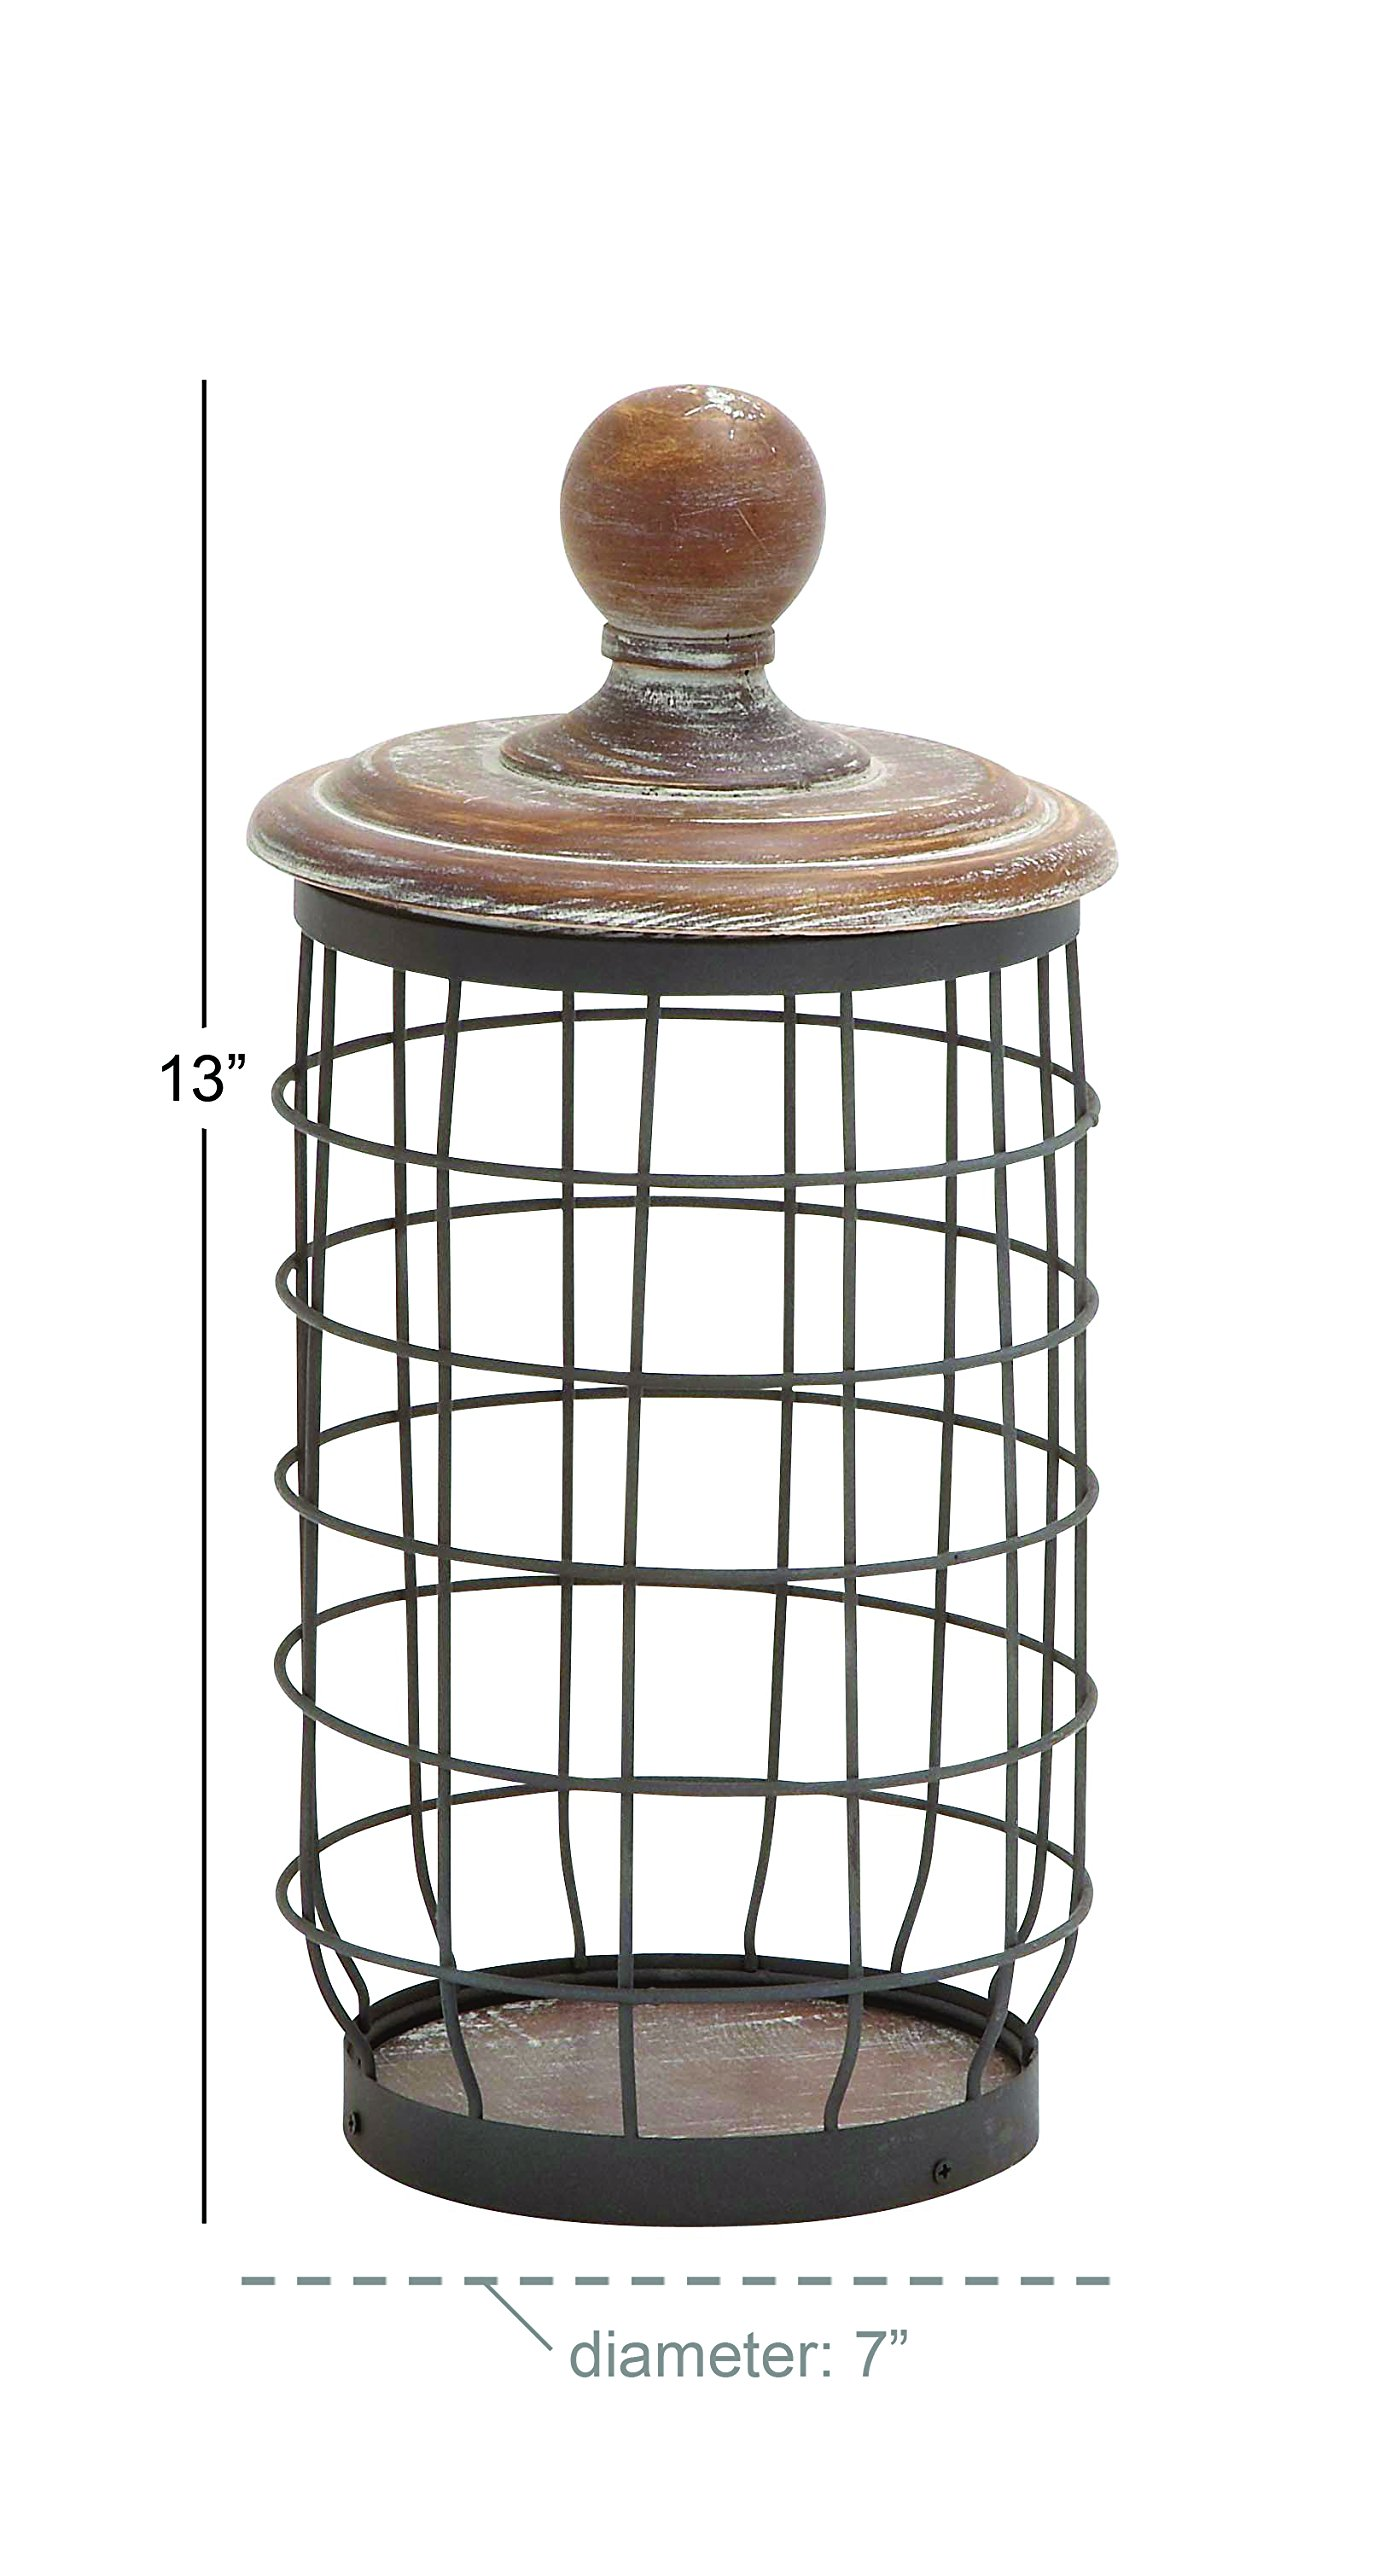 Deco 79 55313 Metal Wood Wire Jar, 7'' by 13'' by Deco 79 (Image #2)